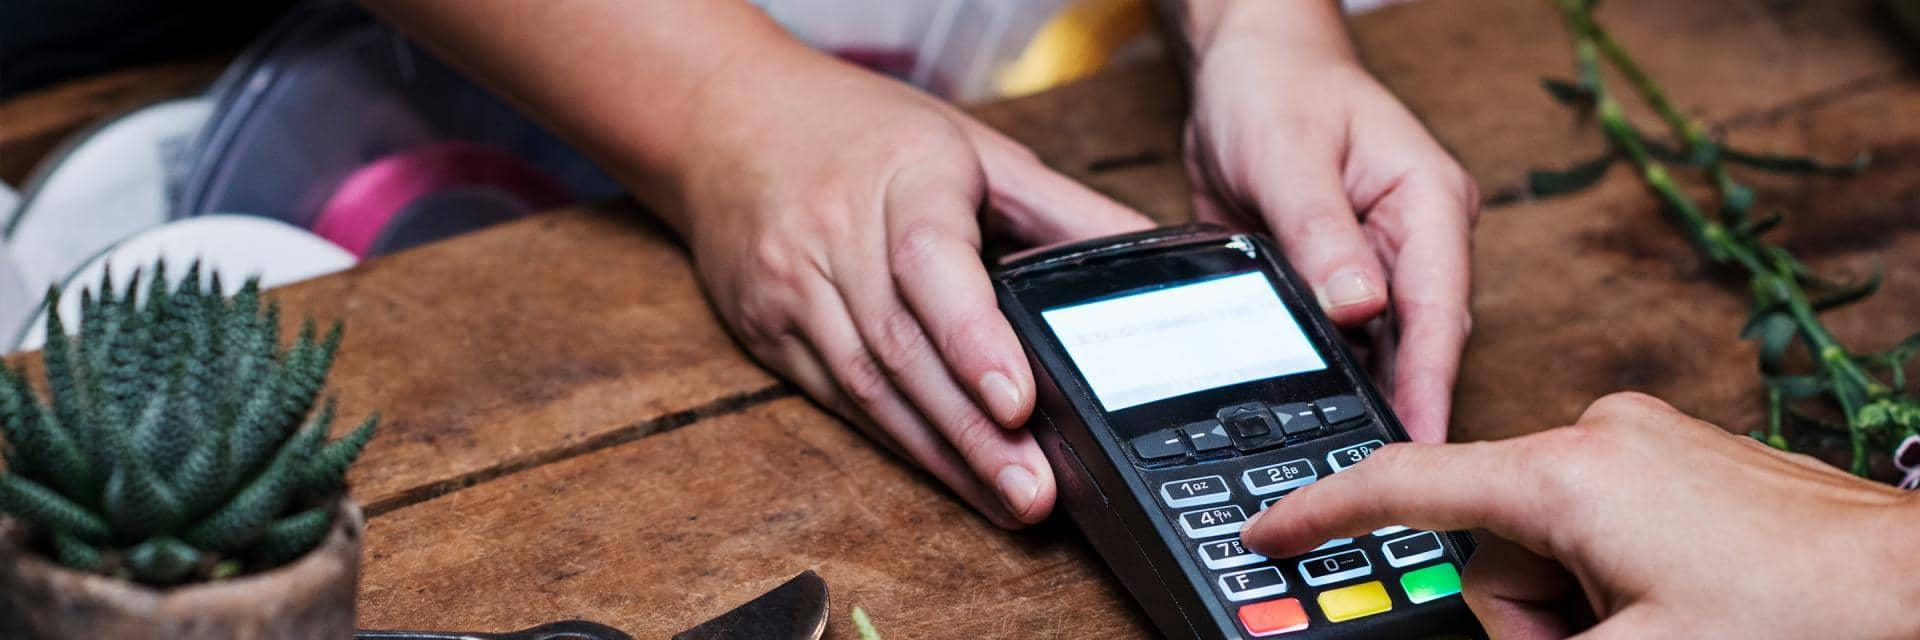 Accepting card payments barclays business banking accepting card payments with barclaycard reheart Image collections